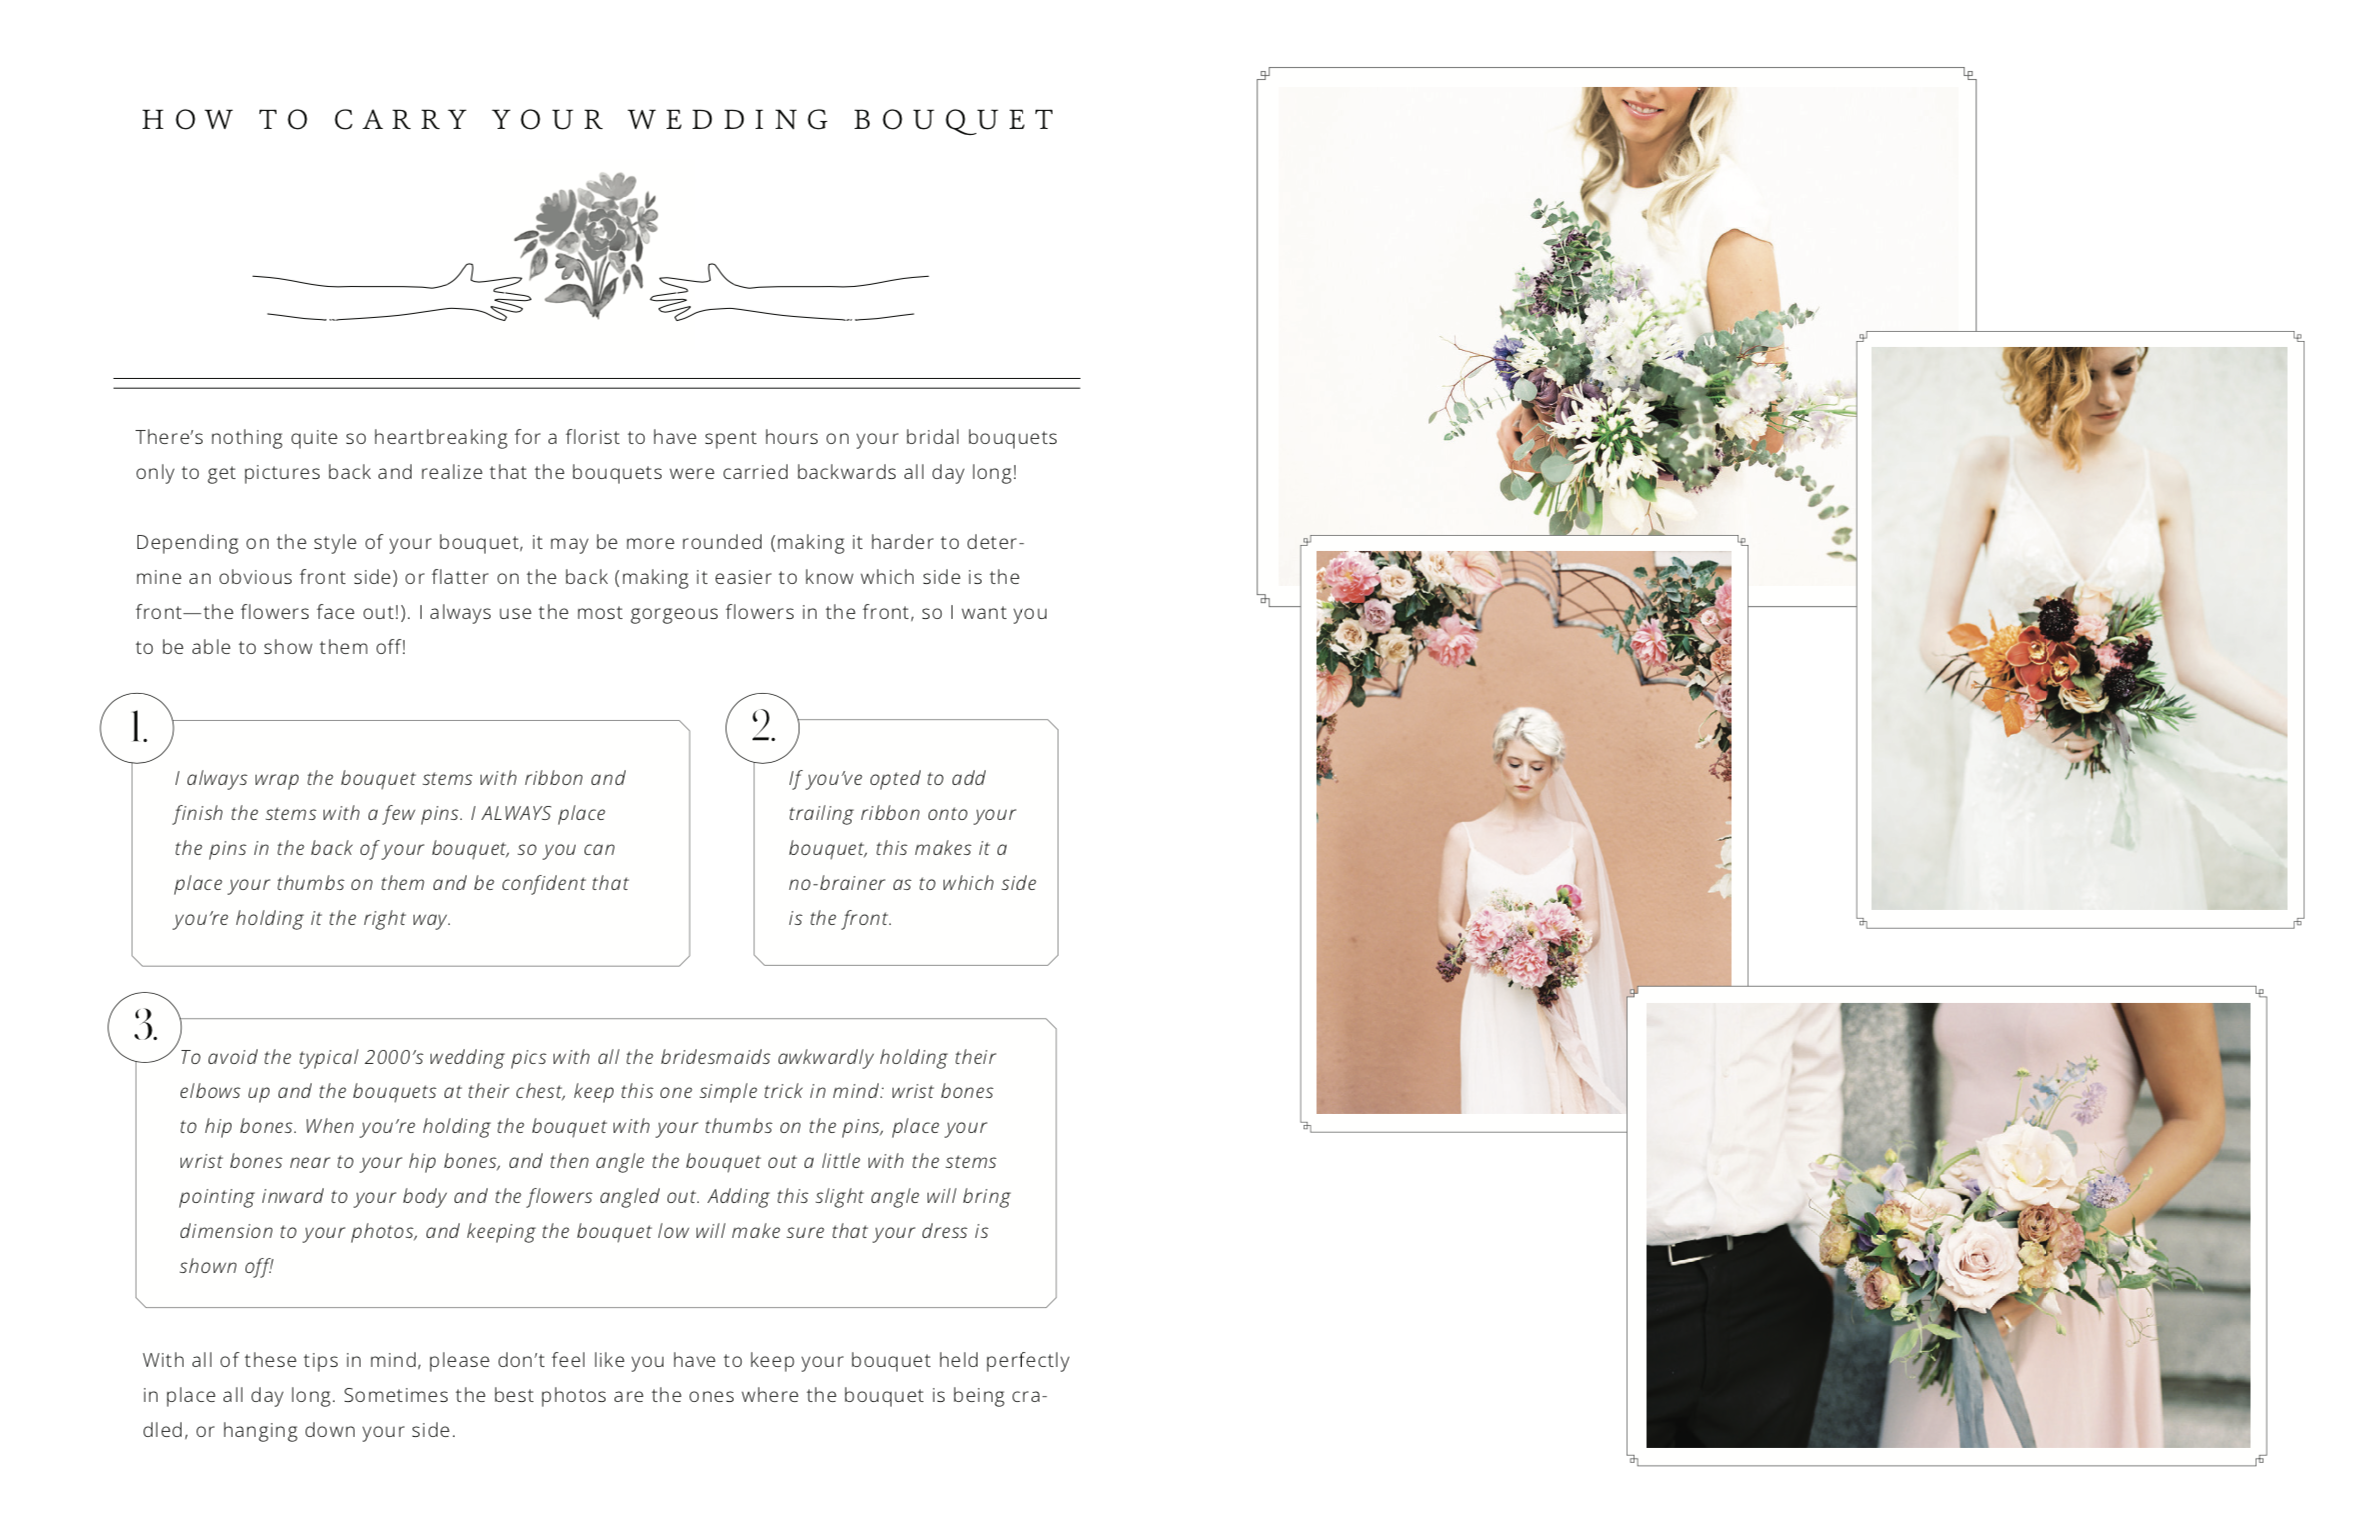 How to Educate Wedding Clients - Stone House Consulting